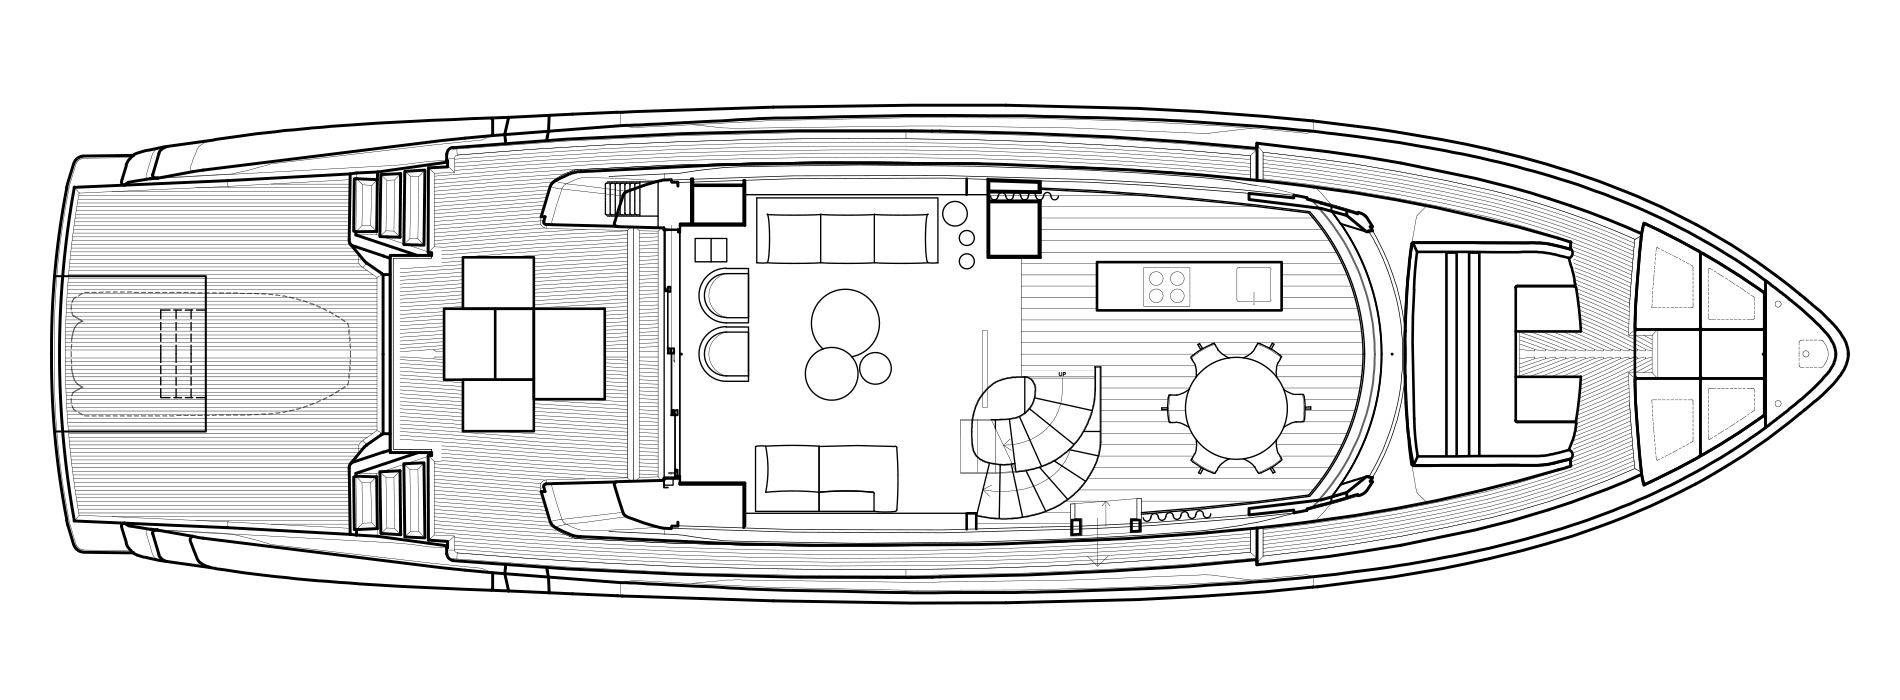 Sanlorenzo Yachts SX76 Main deck Version Lissoni